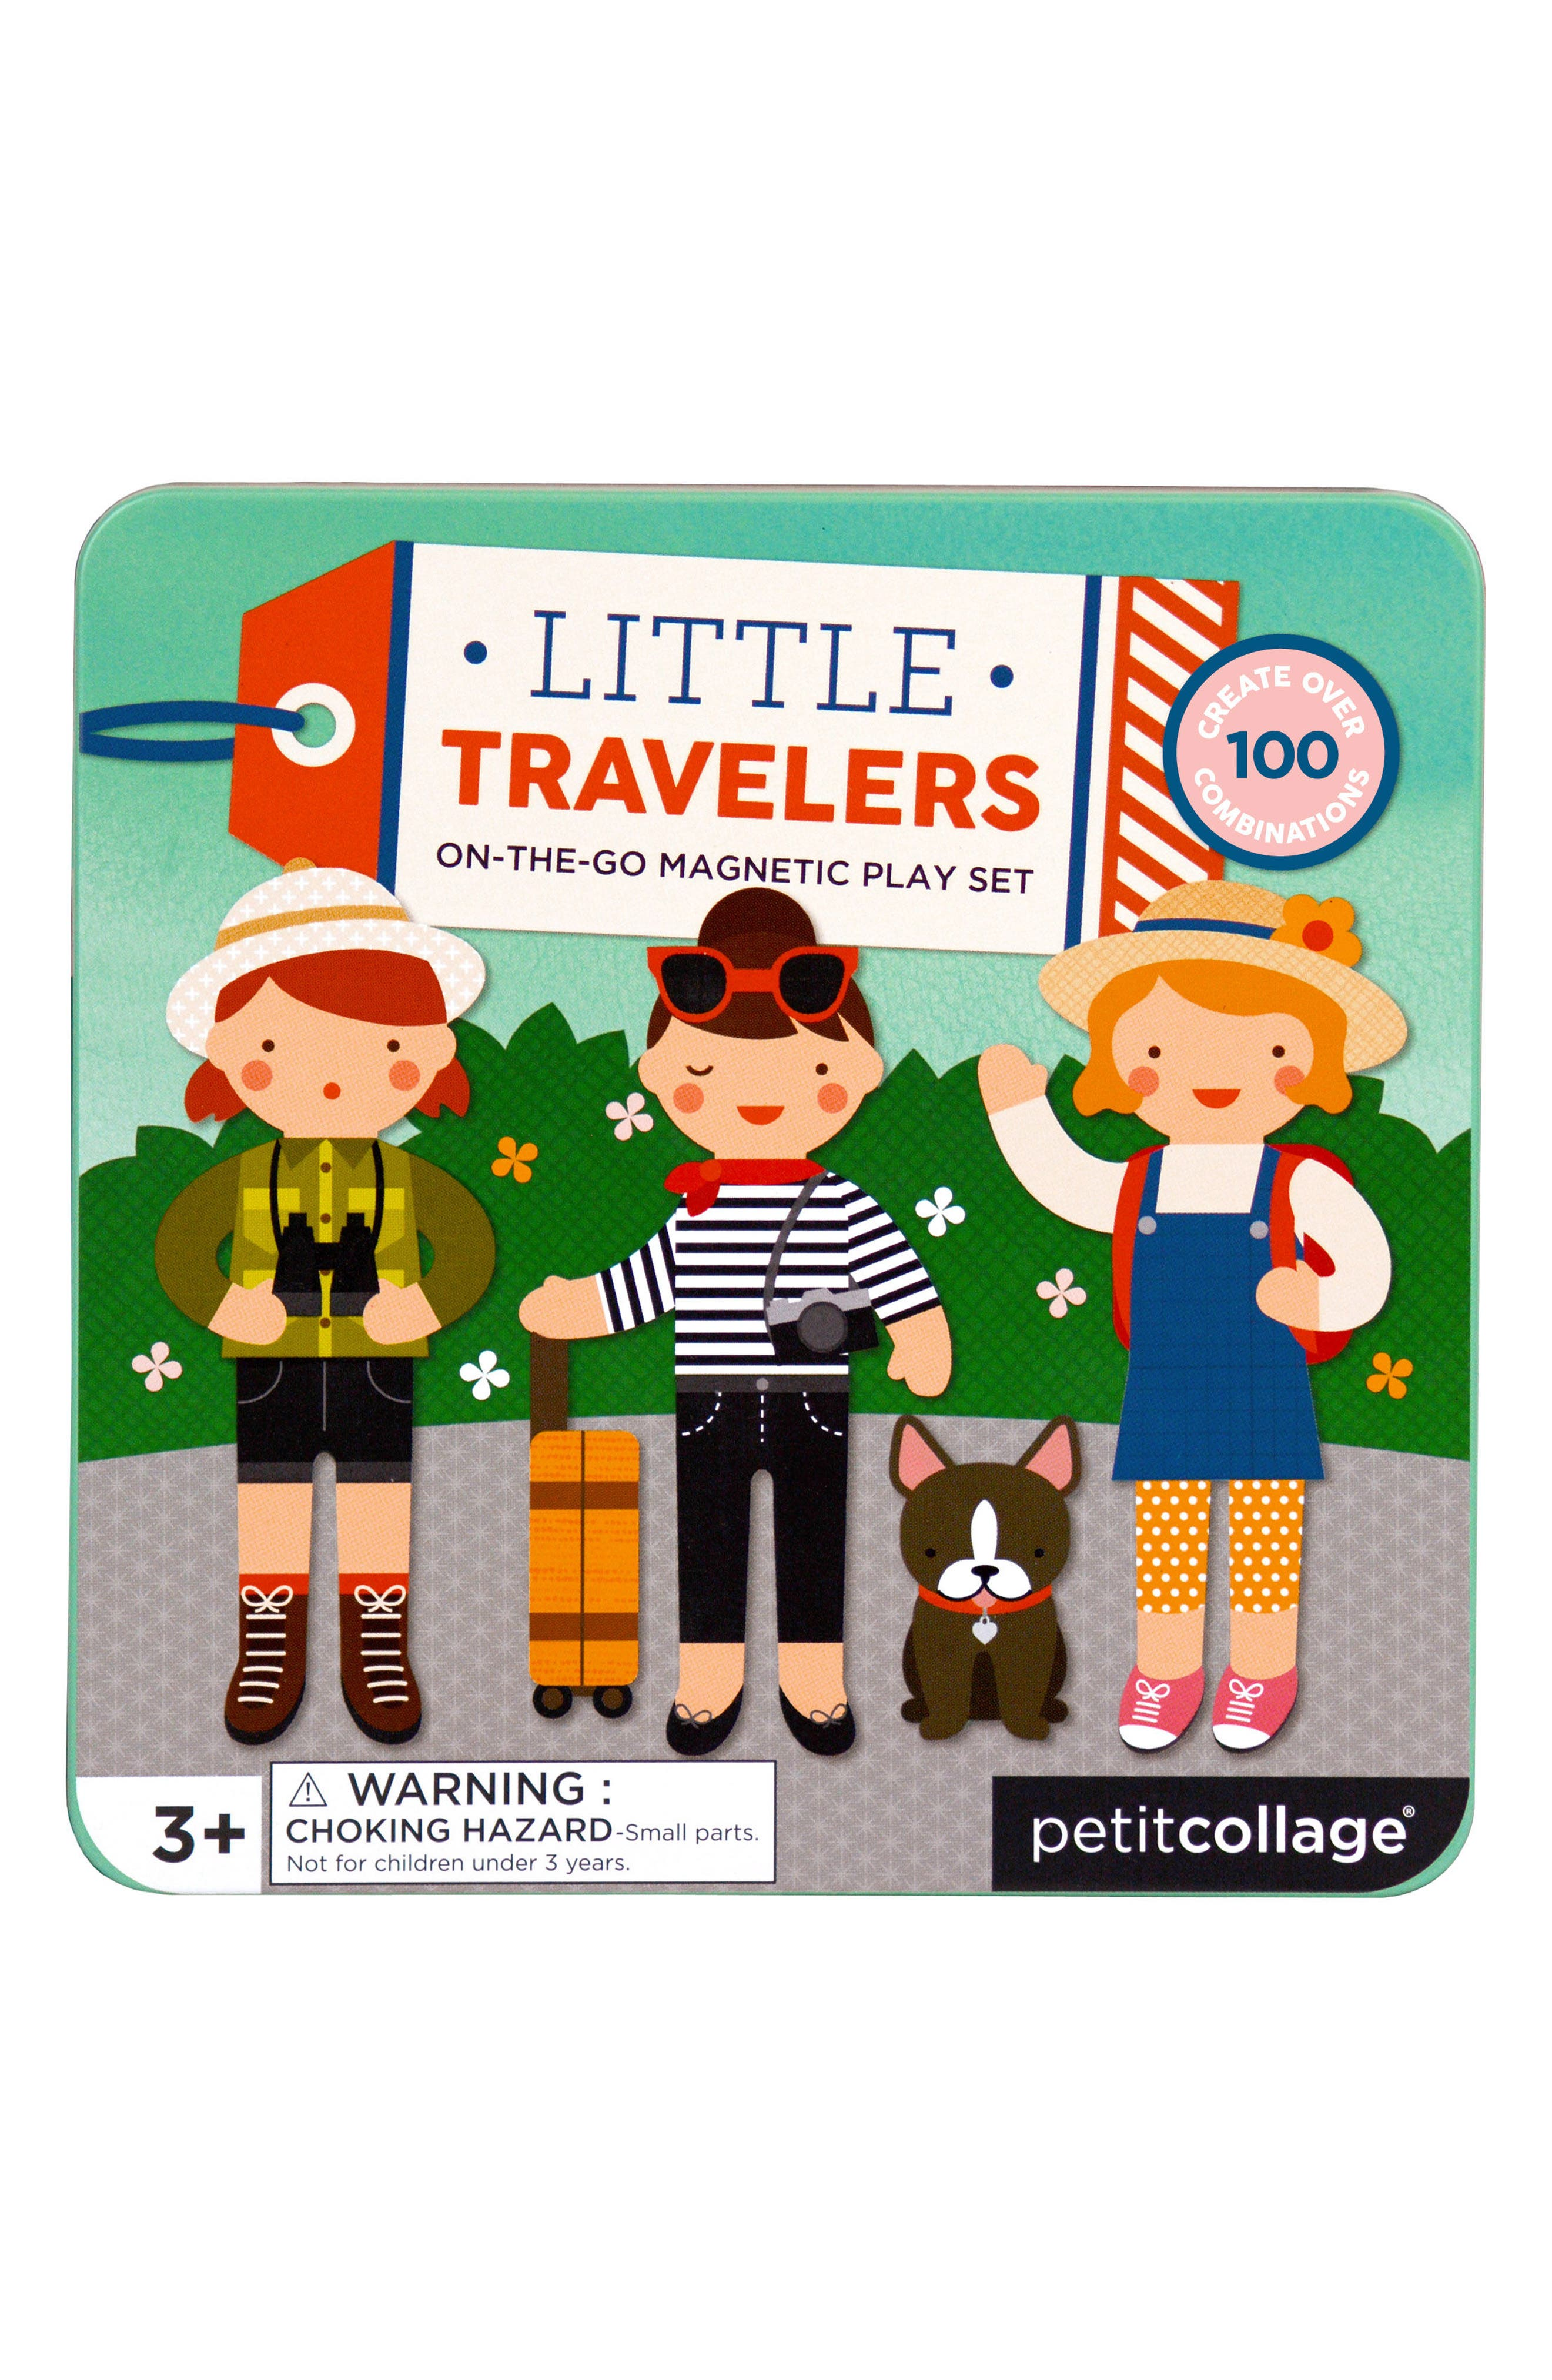 Little Travelers On-the-Go Magnetic Play Set,                         Main,                         color, 300